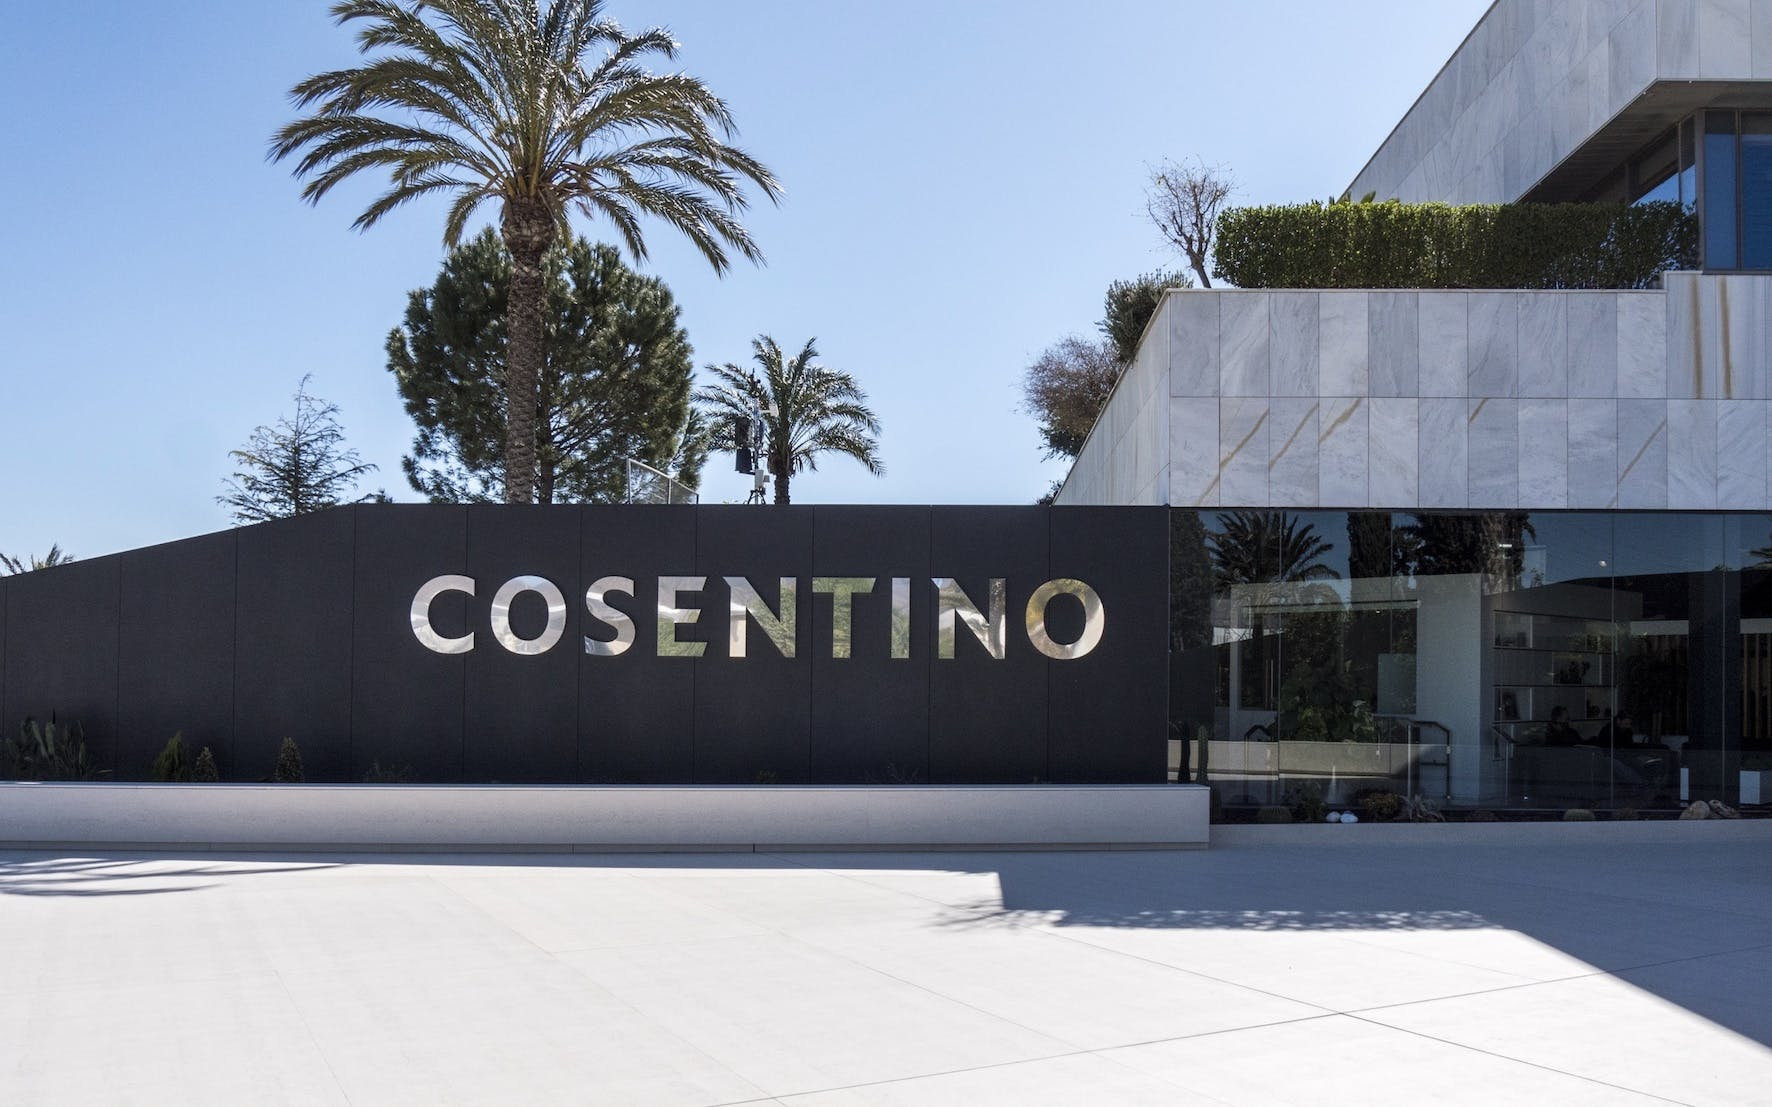 Image of Entrada HQ Cosentino 1 8 in Cosentino Group reports strong results in 2020 - Cosentino